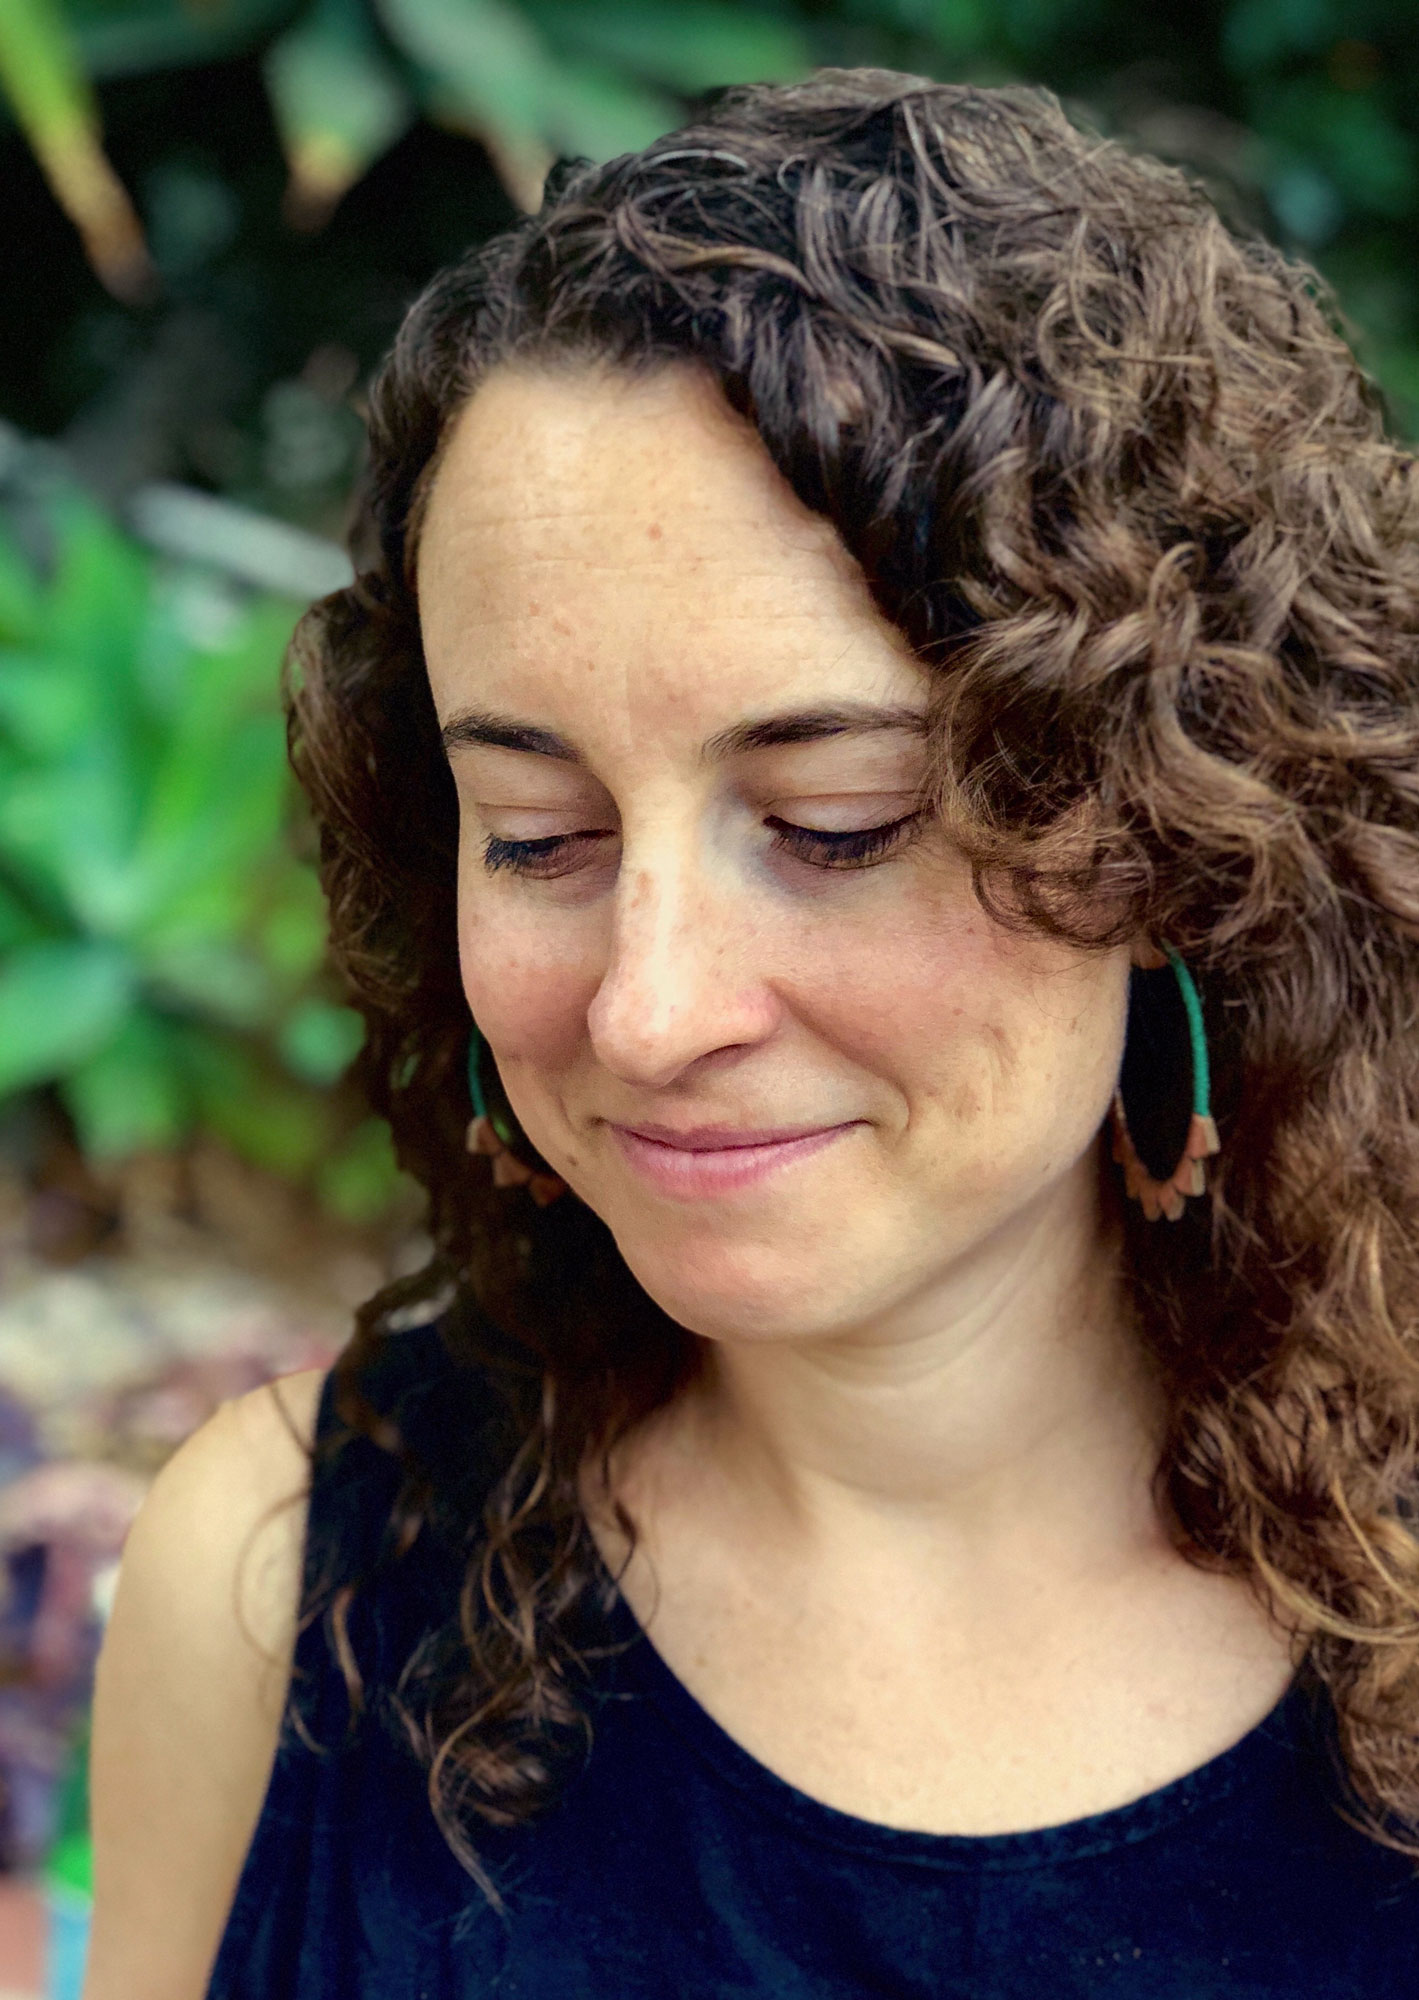 About the Author - Amy Meyerson is a graduate of Wesleyan University and the University of Southern California. She lives in Los Angeles and teaches in the Writing Program at the University of Southern California